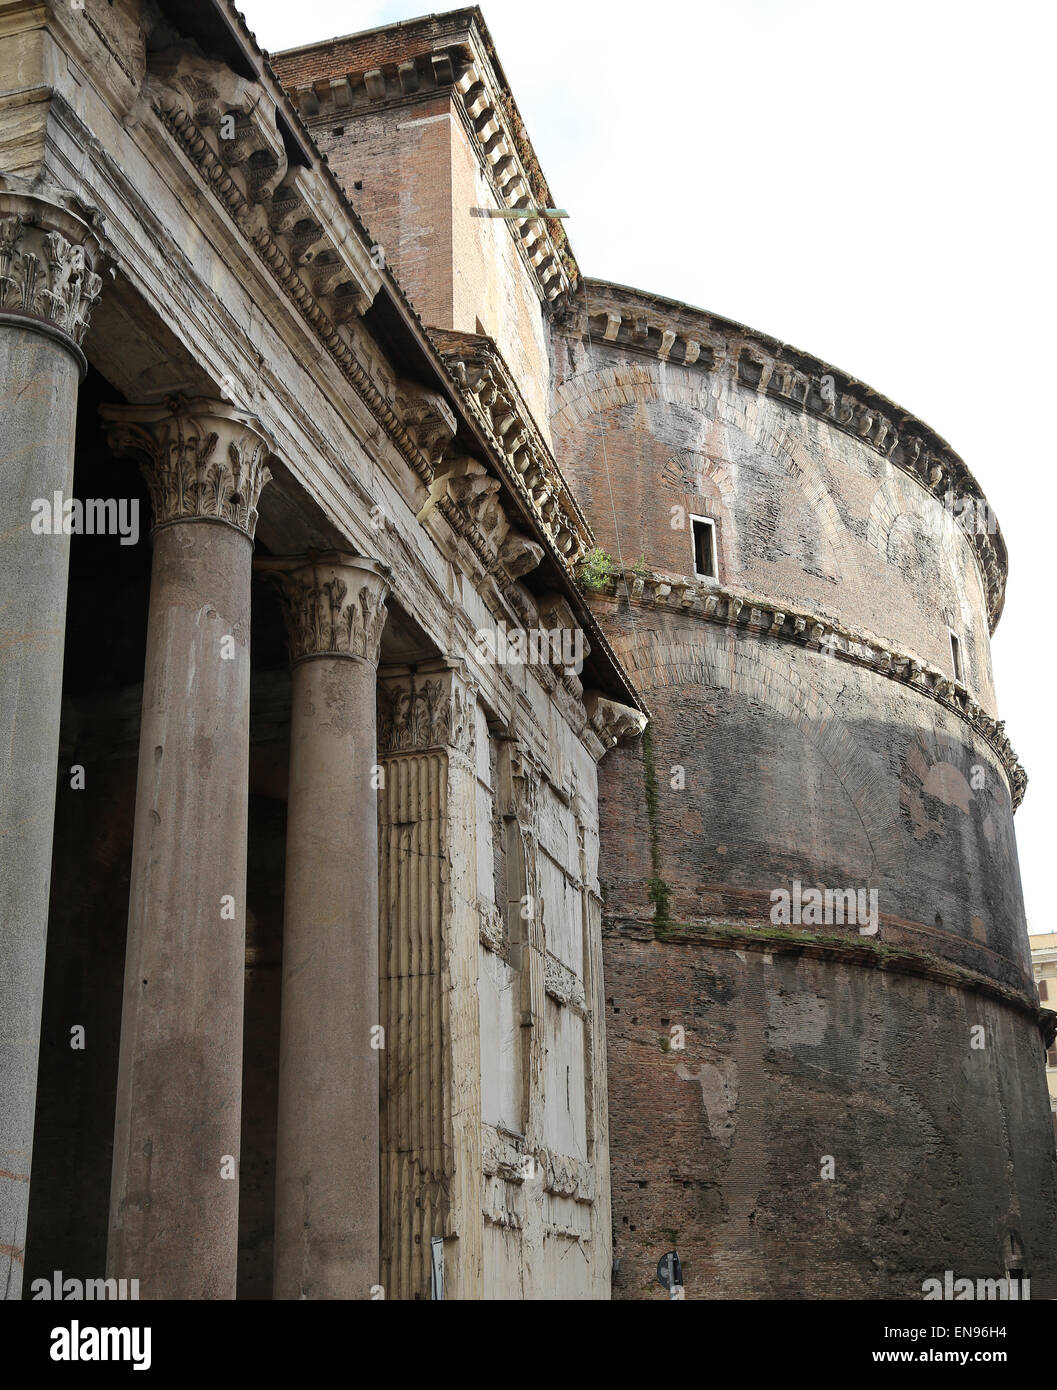 Italy. Rome. Pantheon. Roman temple. Exterior. Stock Photo